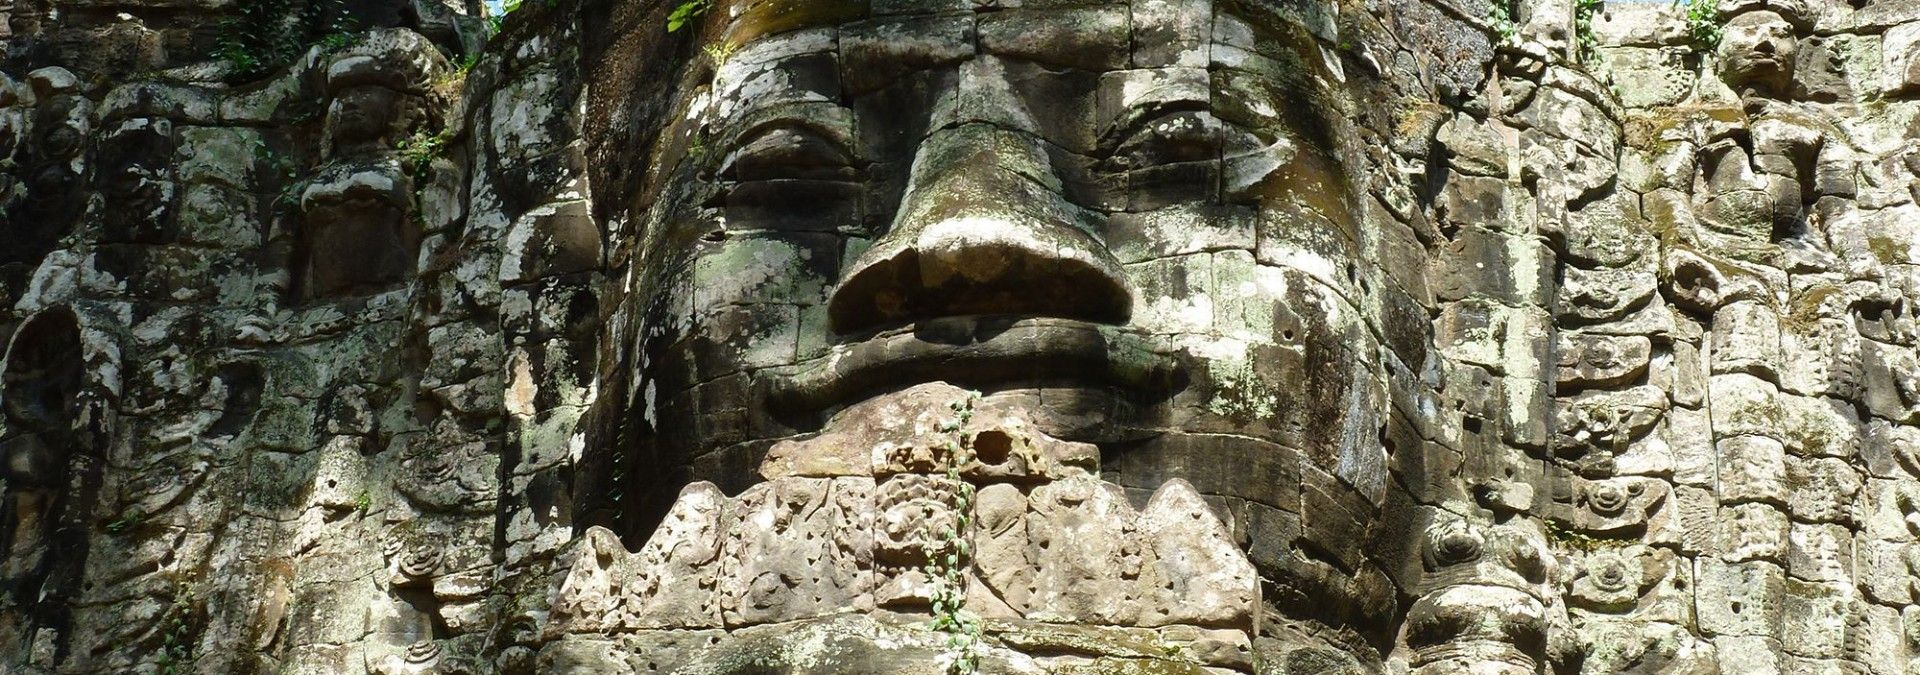 Ancient temples of Angkor Wat in Cambodia